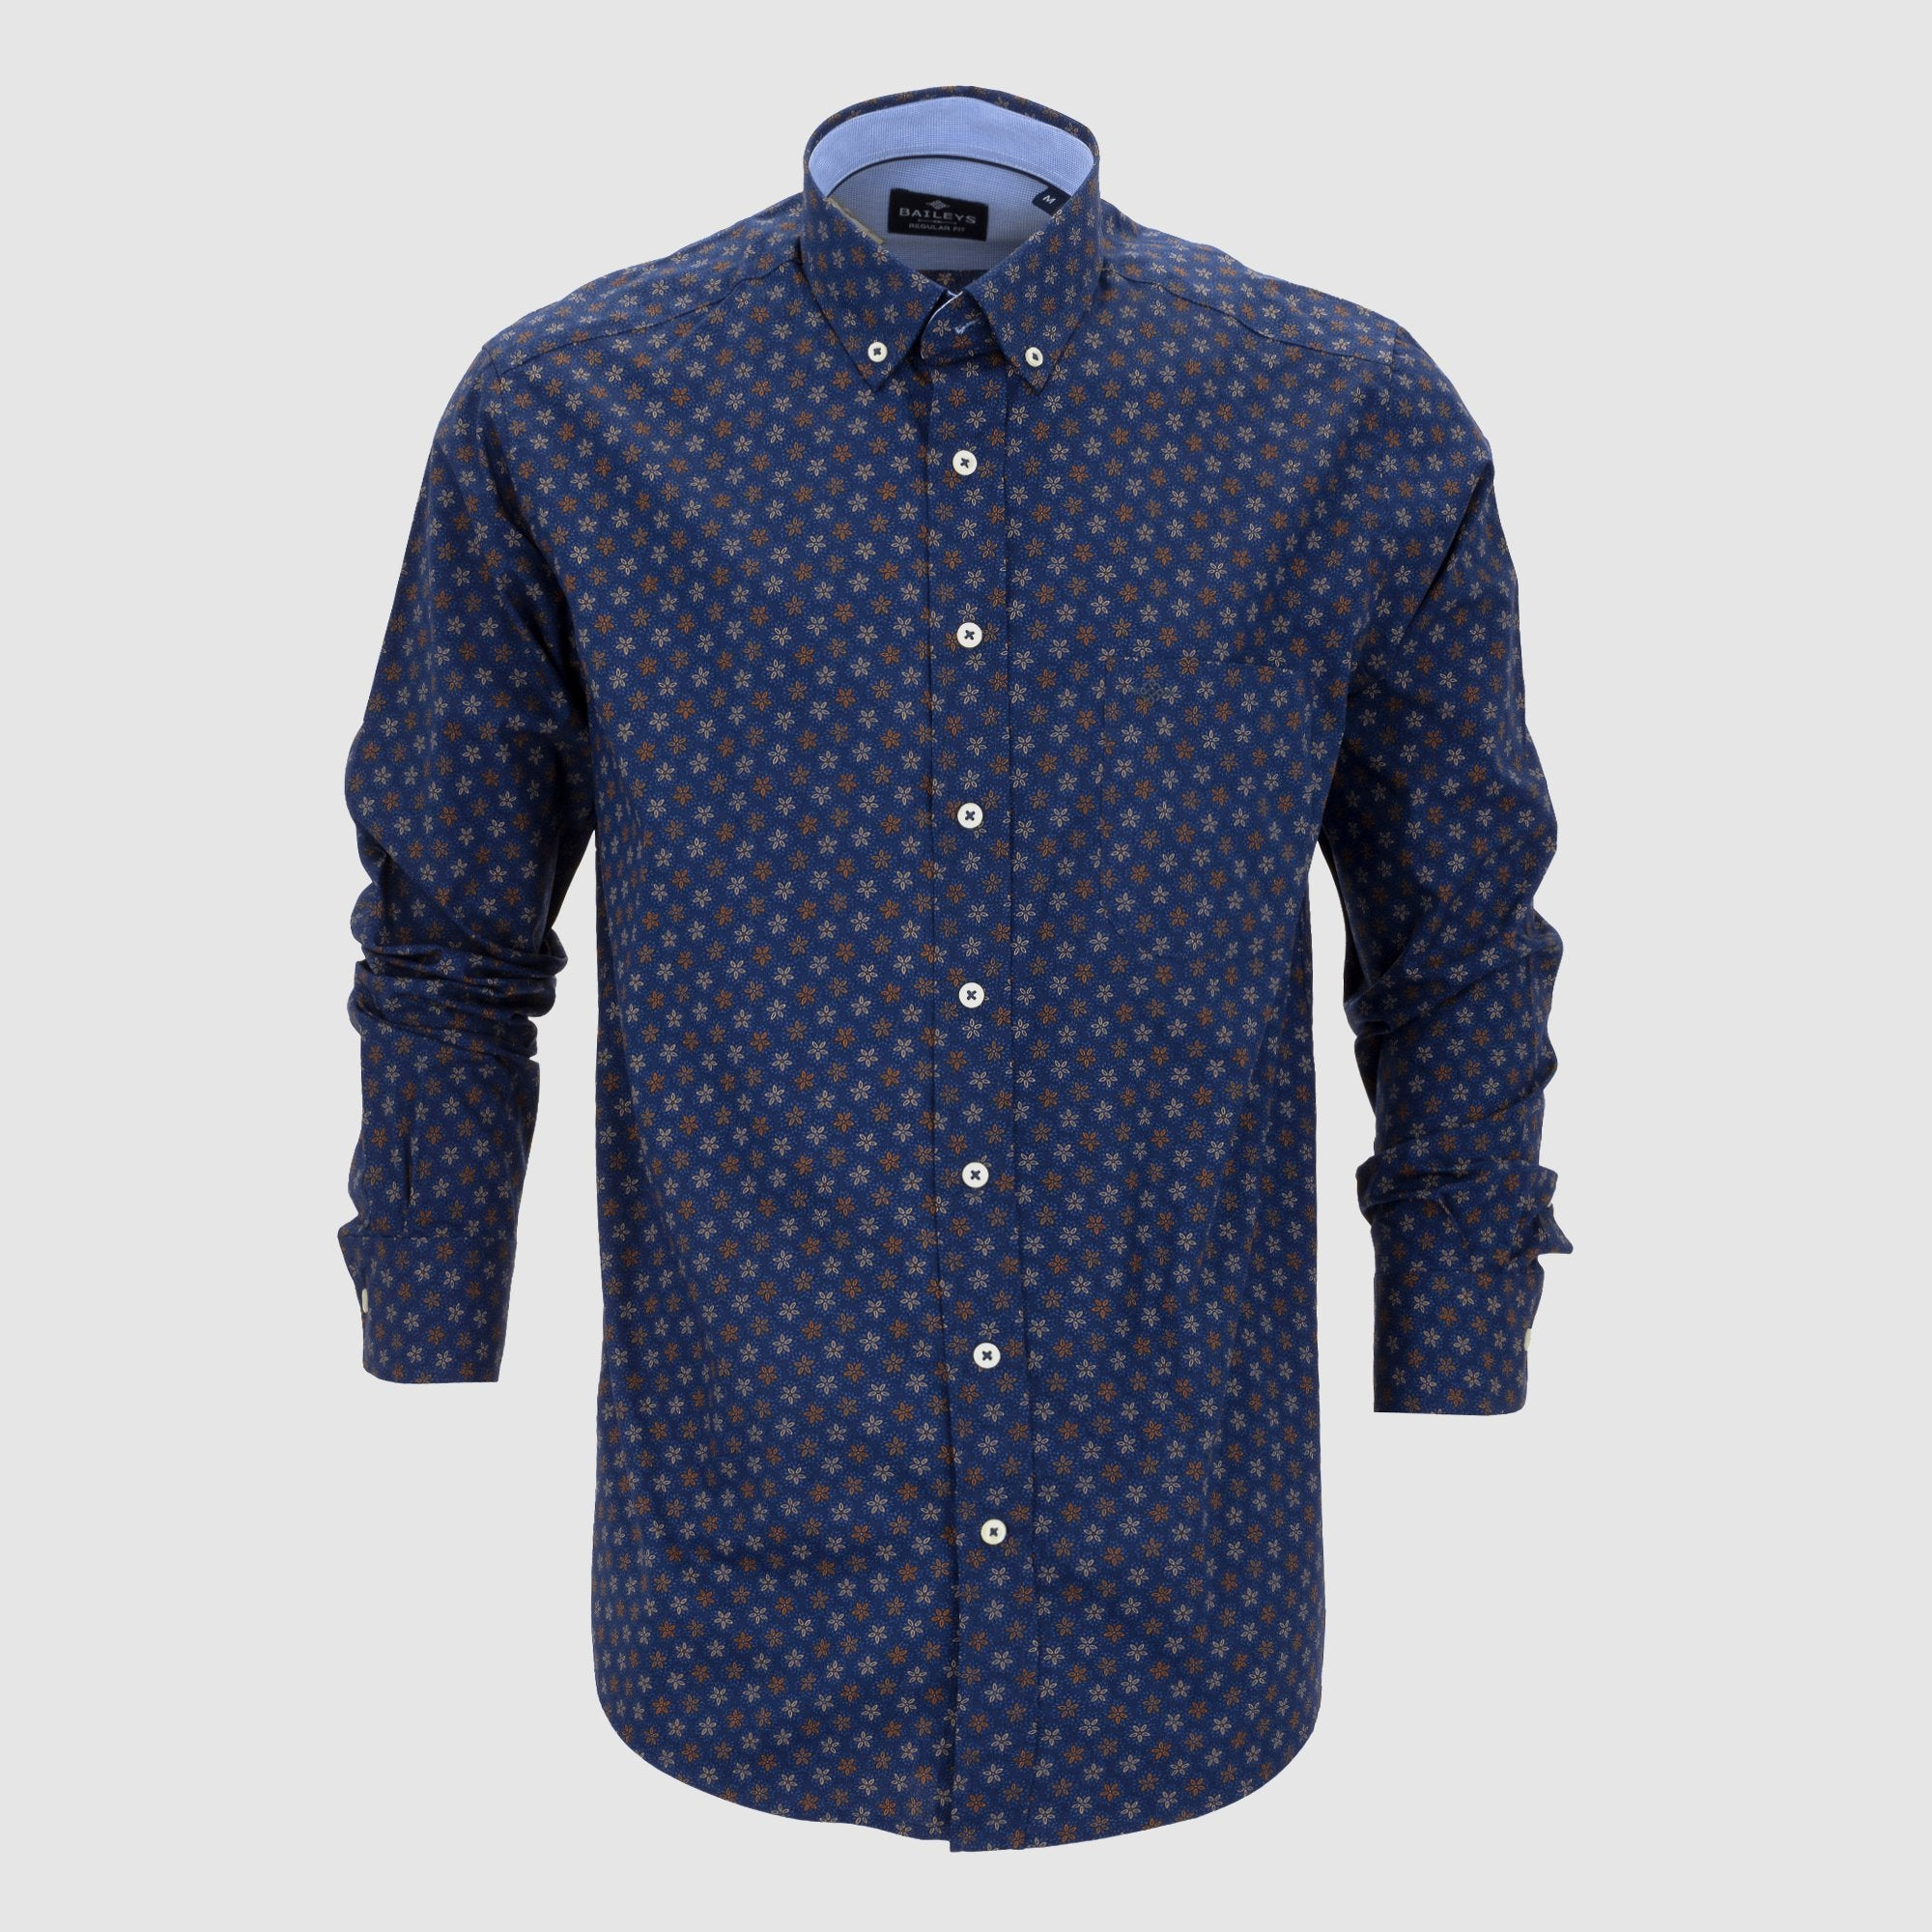 Camisa estampada regular fit 207680